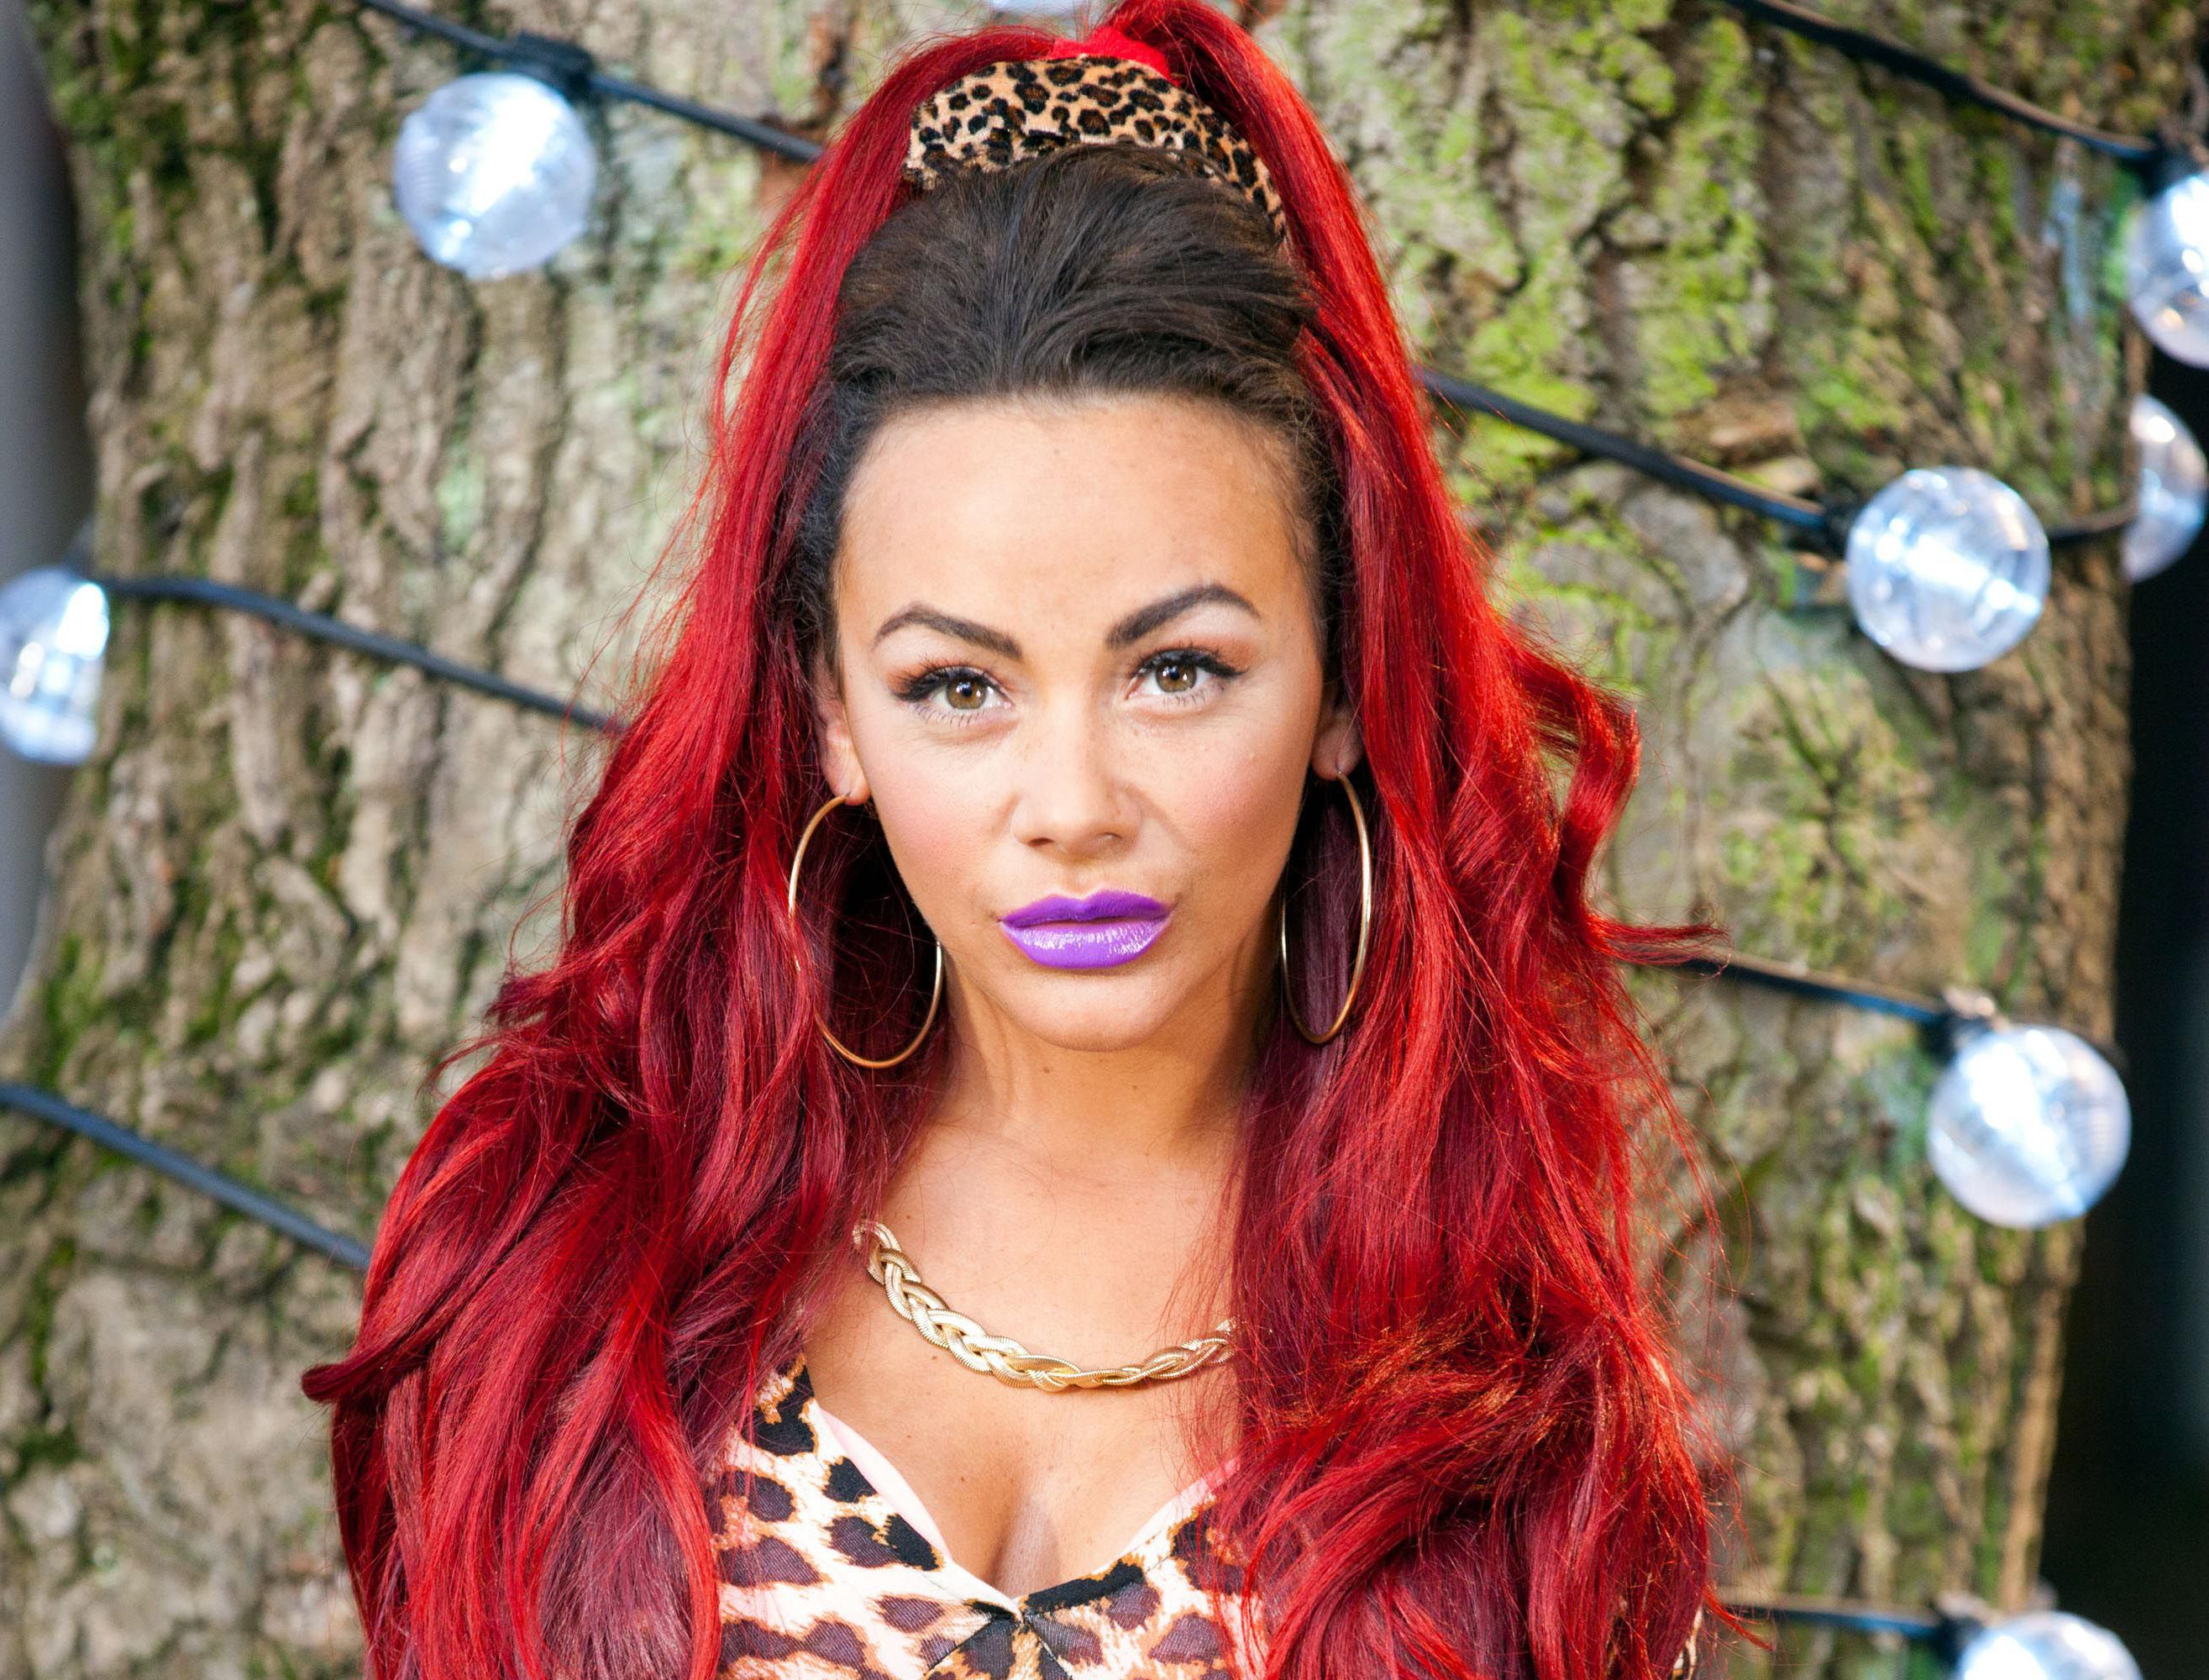 Hollyoaks star Chelsee Healey hits out at 'scary' online stalker